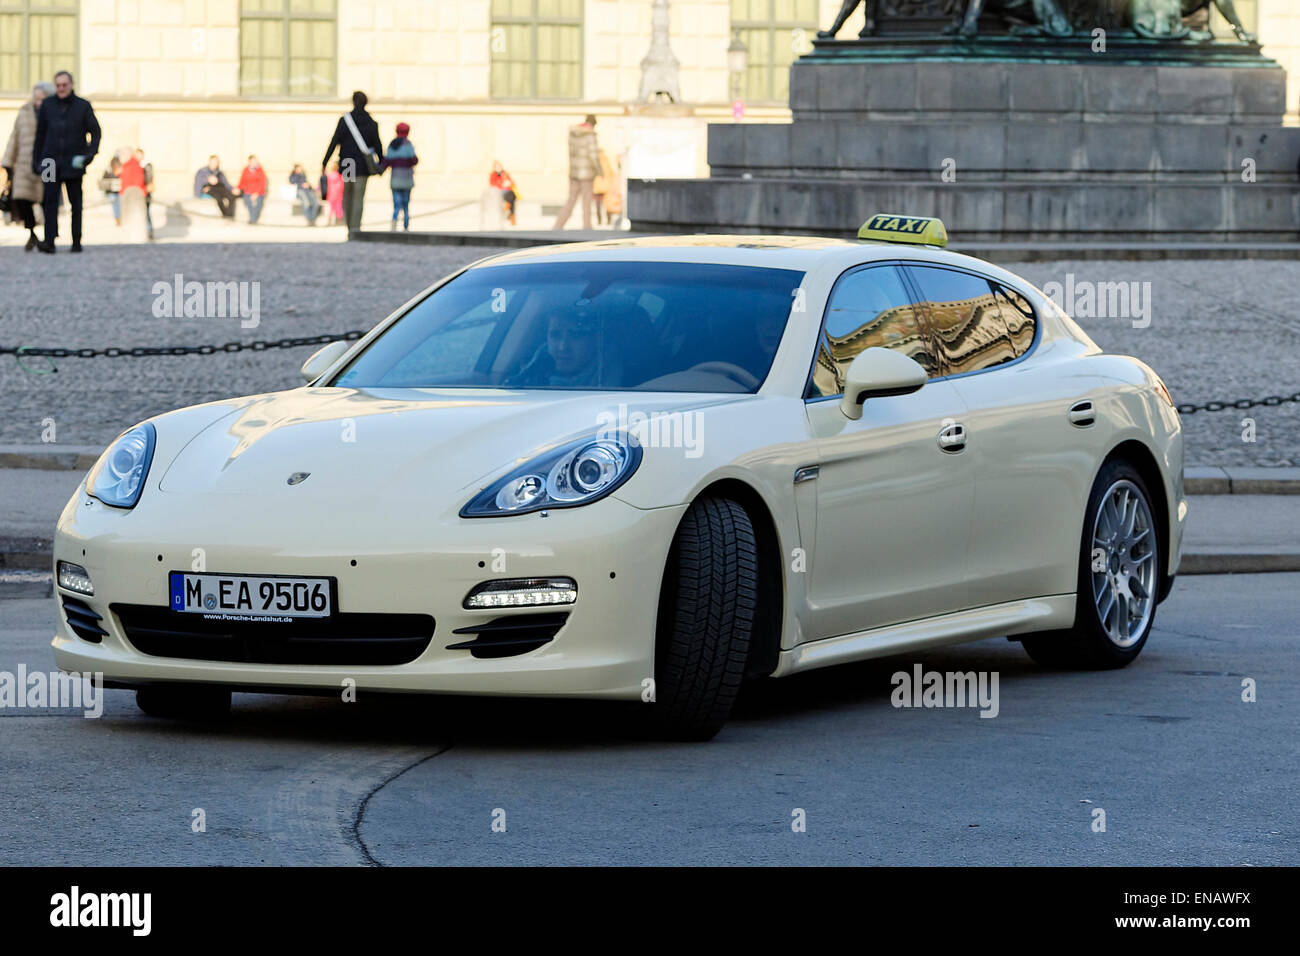 porsche panamera taxi car munich upper bavaria germany europe stock photo 81988814 alamy. Black Bedroom Furniture Sets. Home Design Ideas